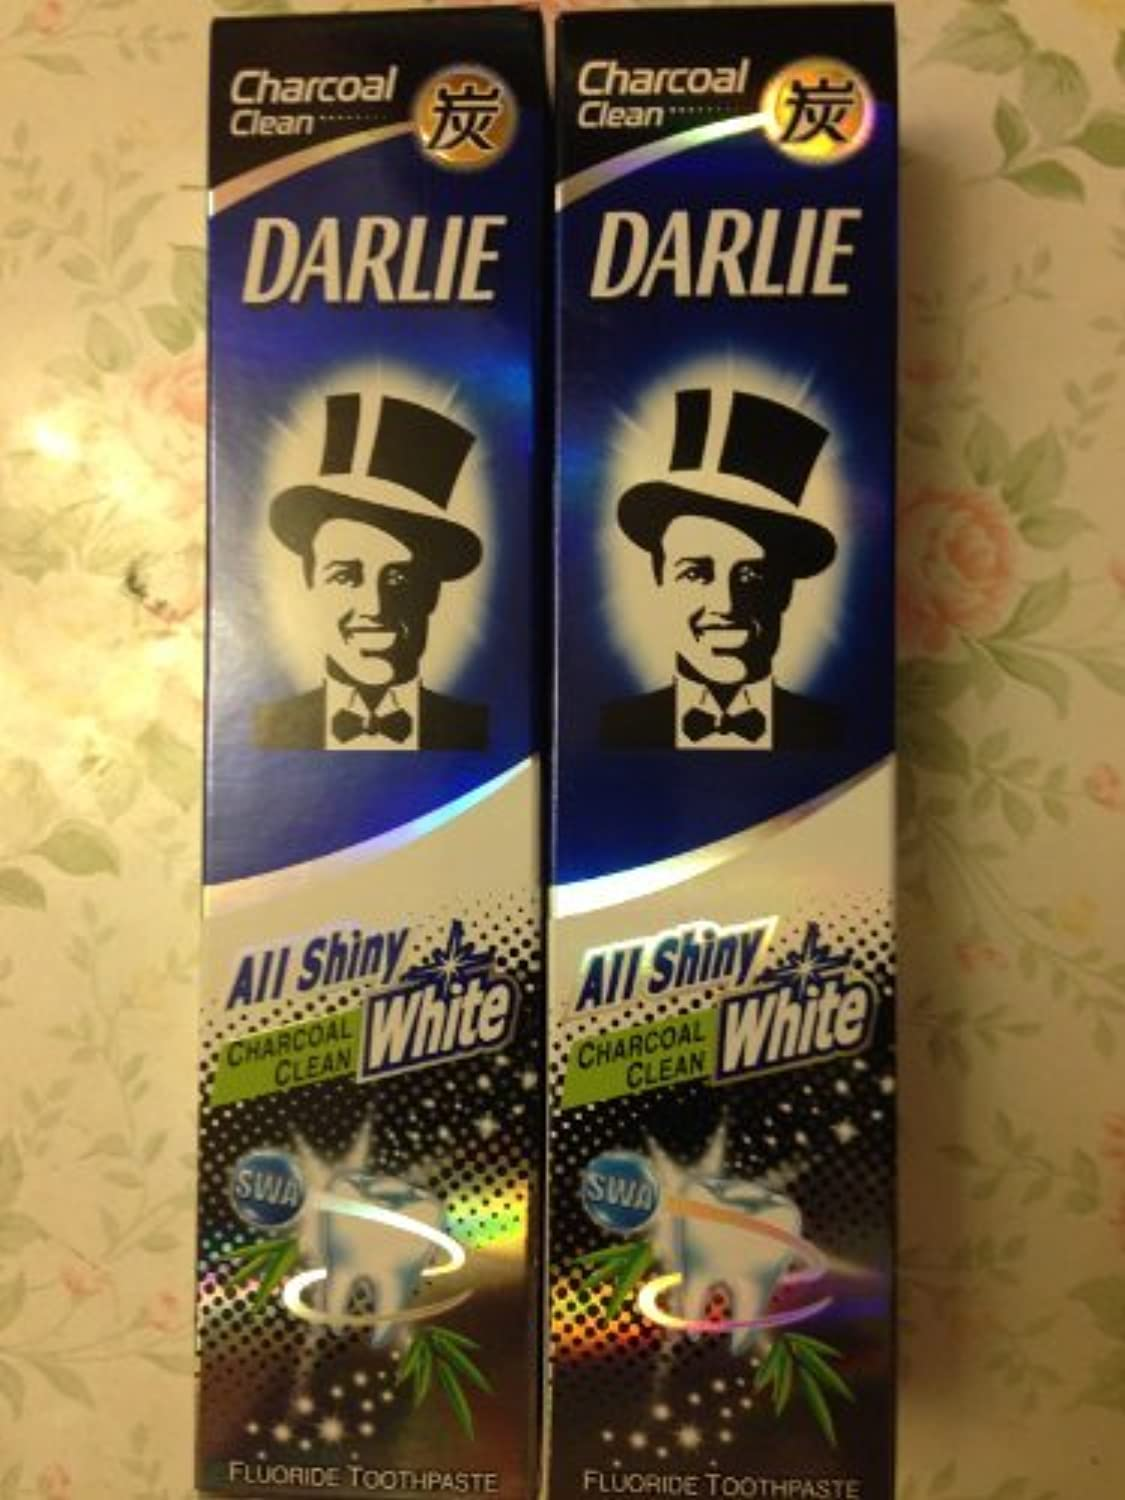 2 packs of Darlie Charcoal All Shiny Whitening Toothpaste by Darlie